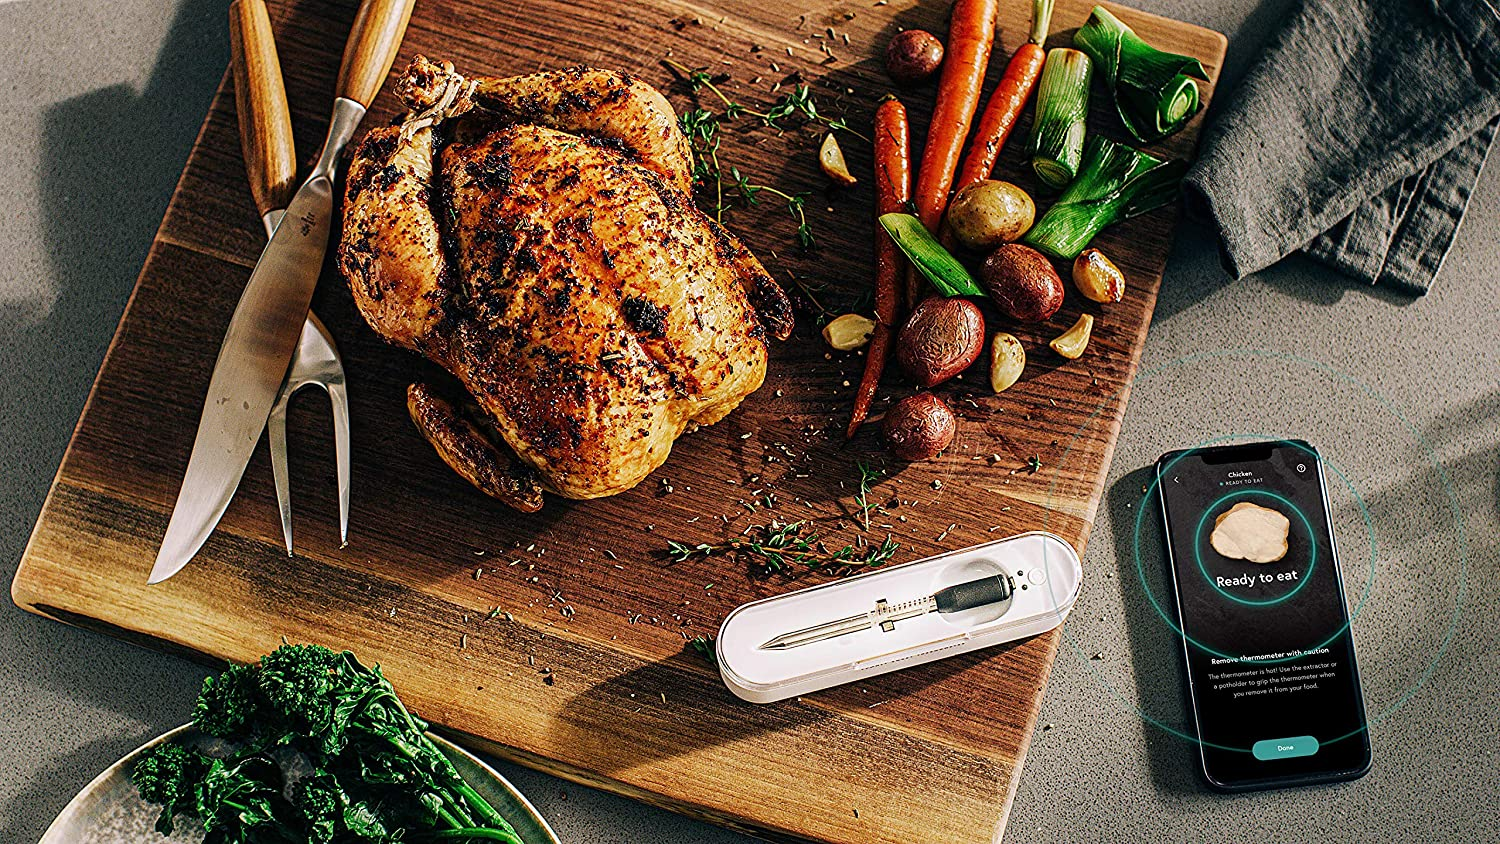 Yummly Meat Thermometer